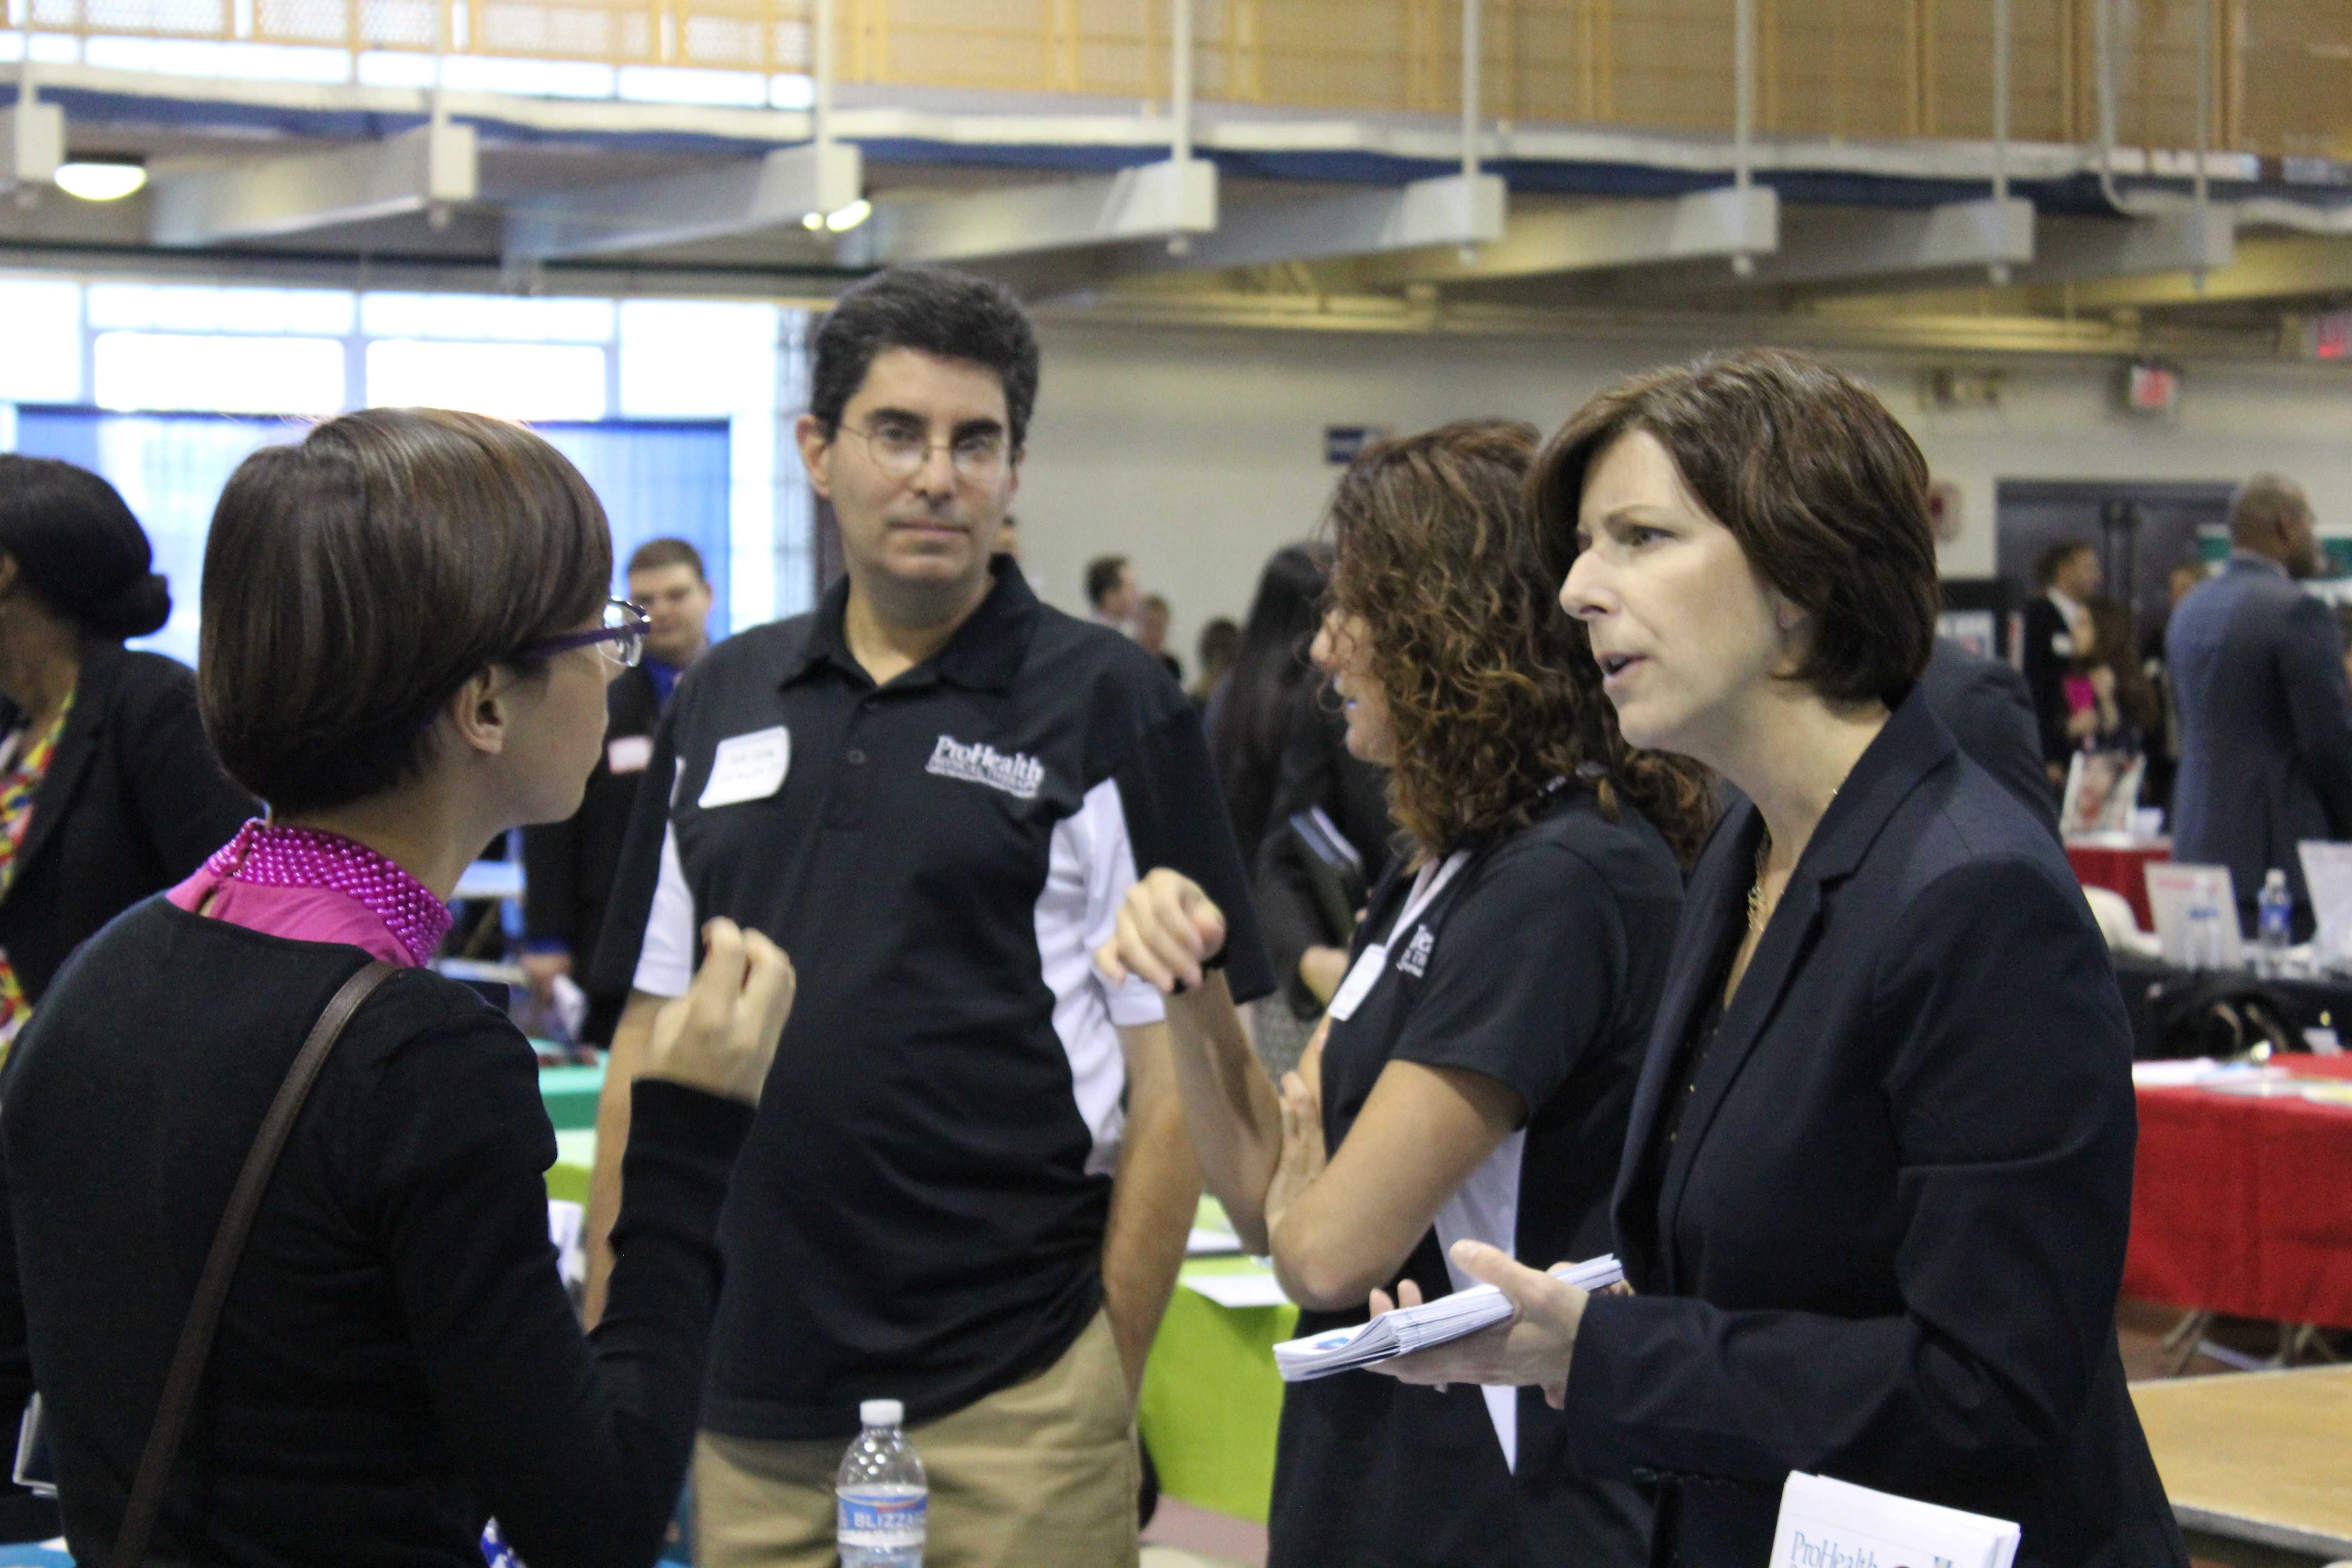 Students attend annual career fair